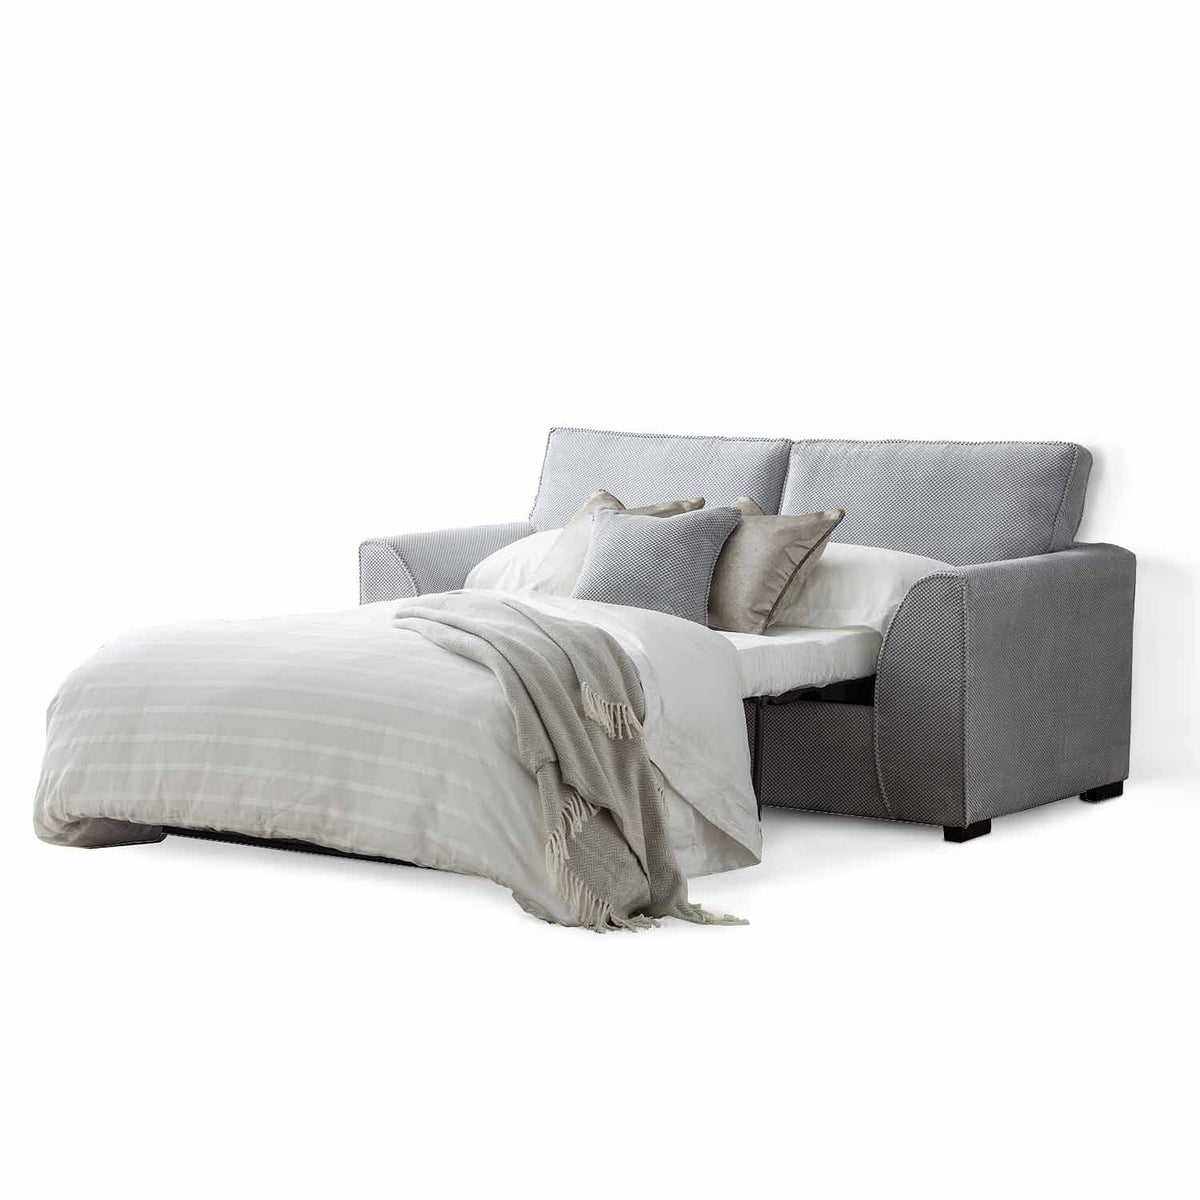 Dallas Silver 2 Seater Sofa Bed - With bed open